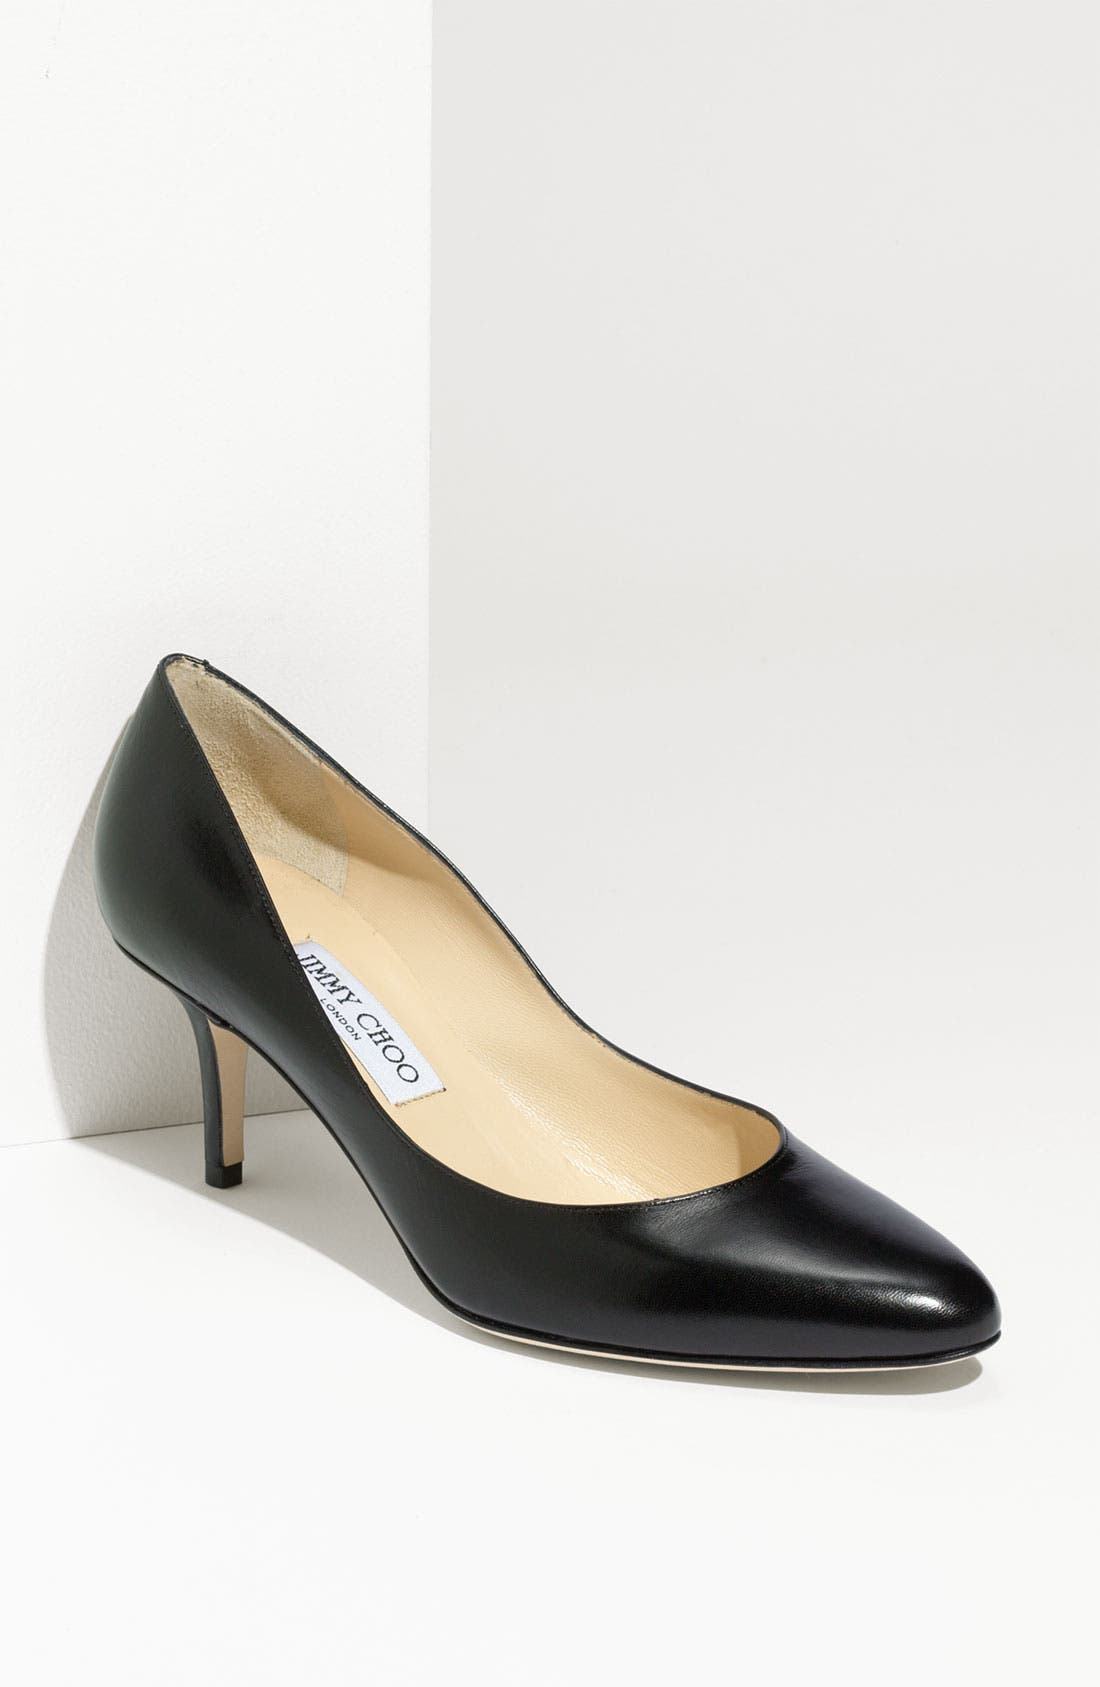 Alternate Image 1 Selected - Jimmy Choo 'Irena' Round Toe Pump